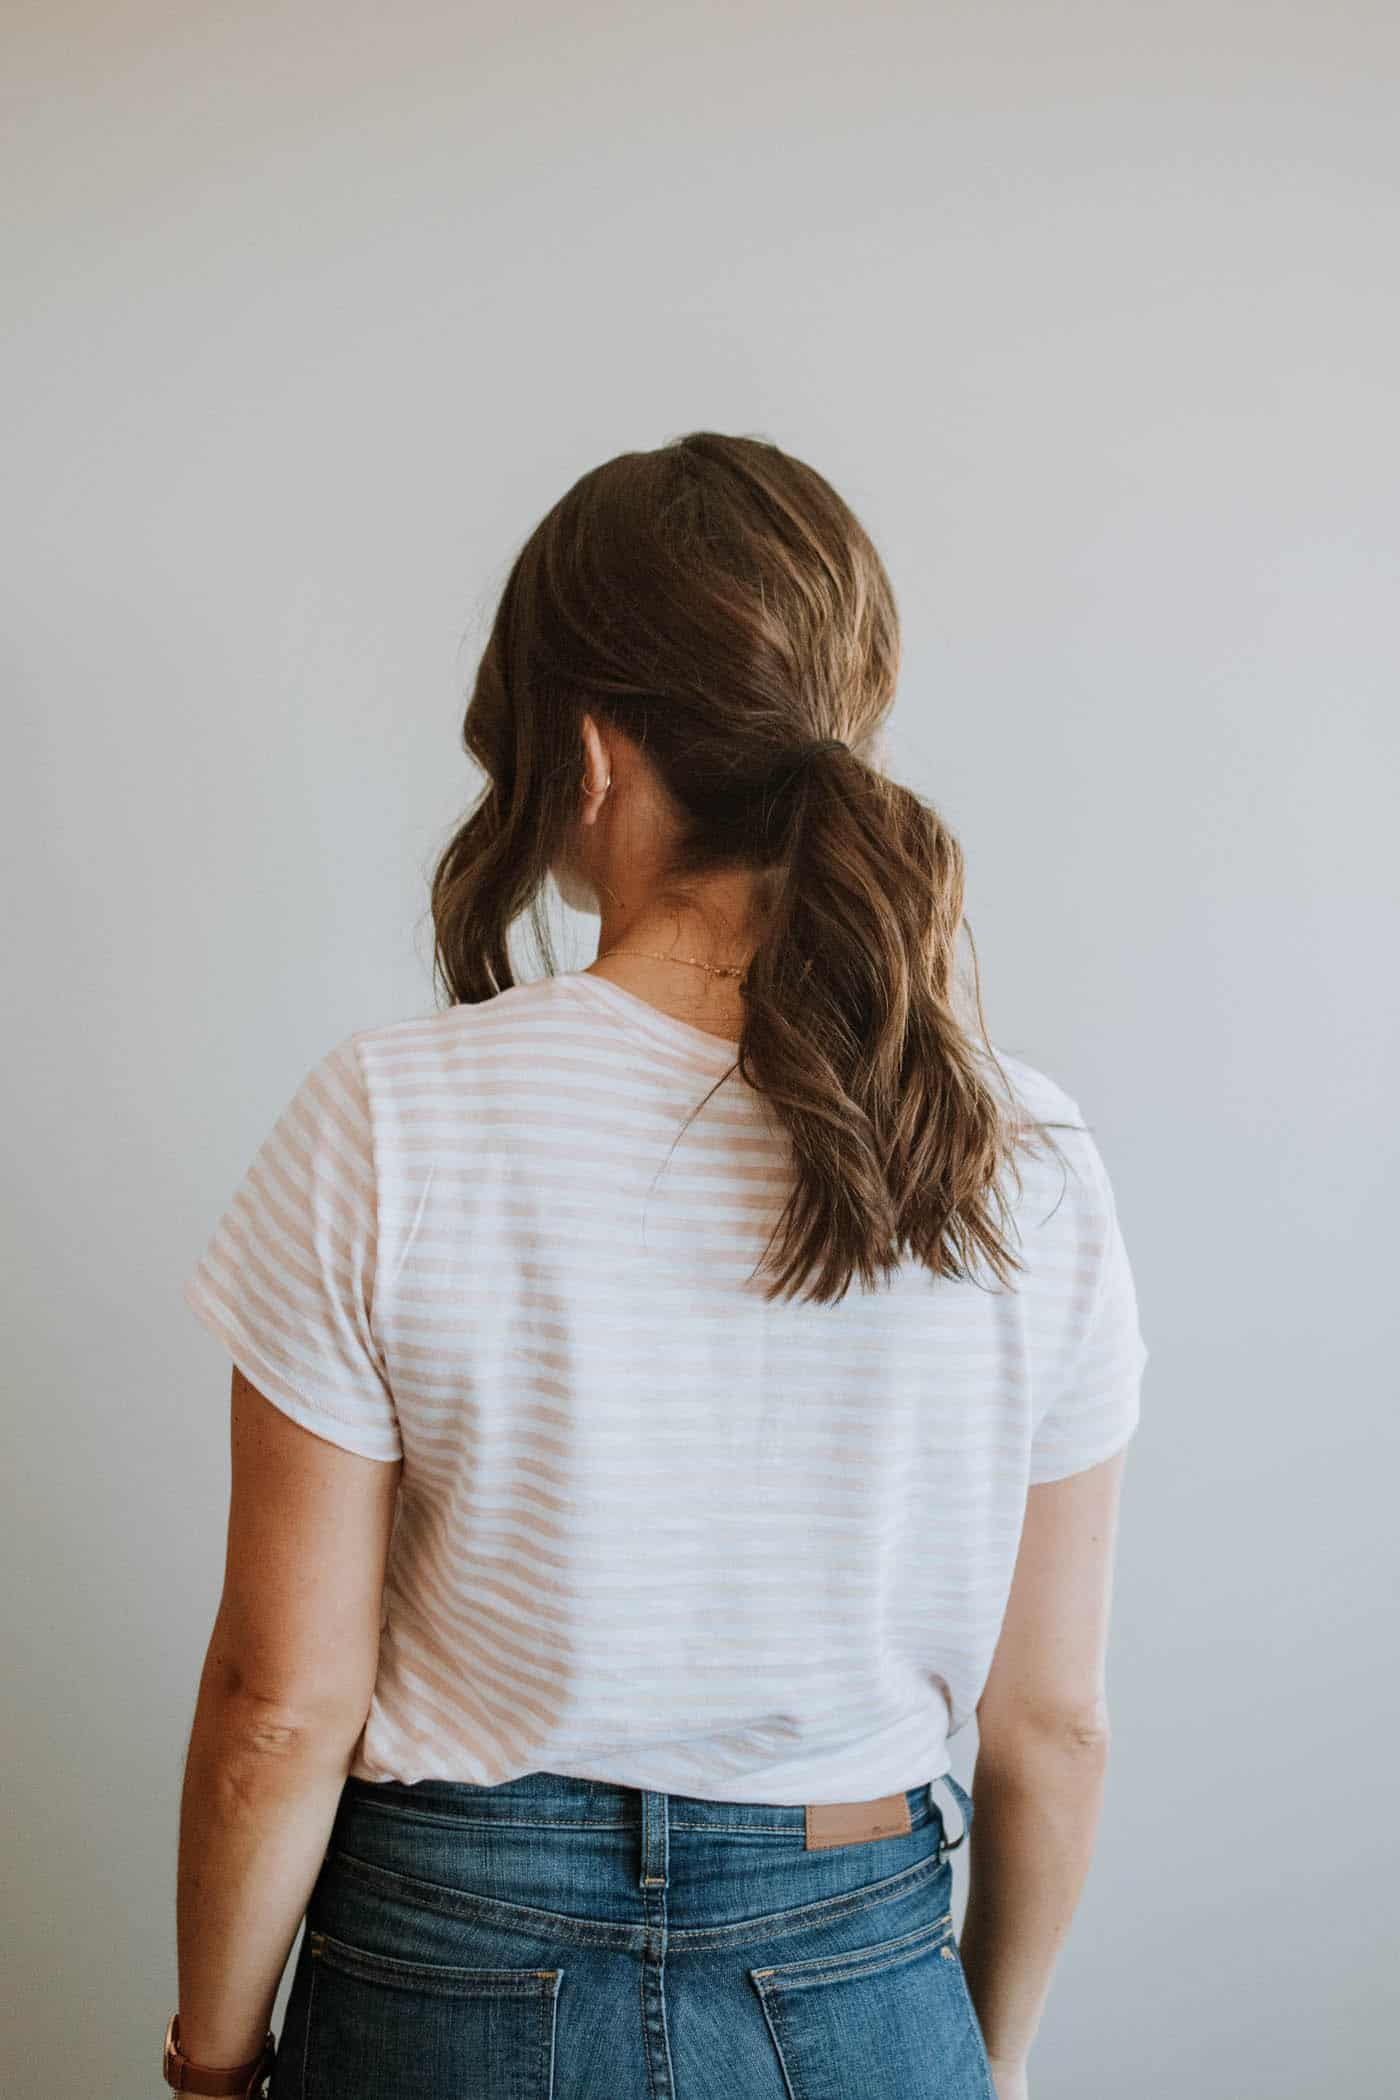 An Easy Low Ponytail Hairstyle For Any Occassion - My Style Vita